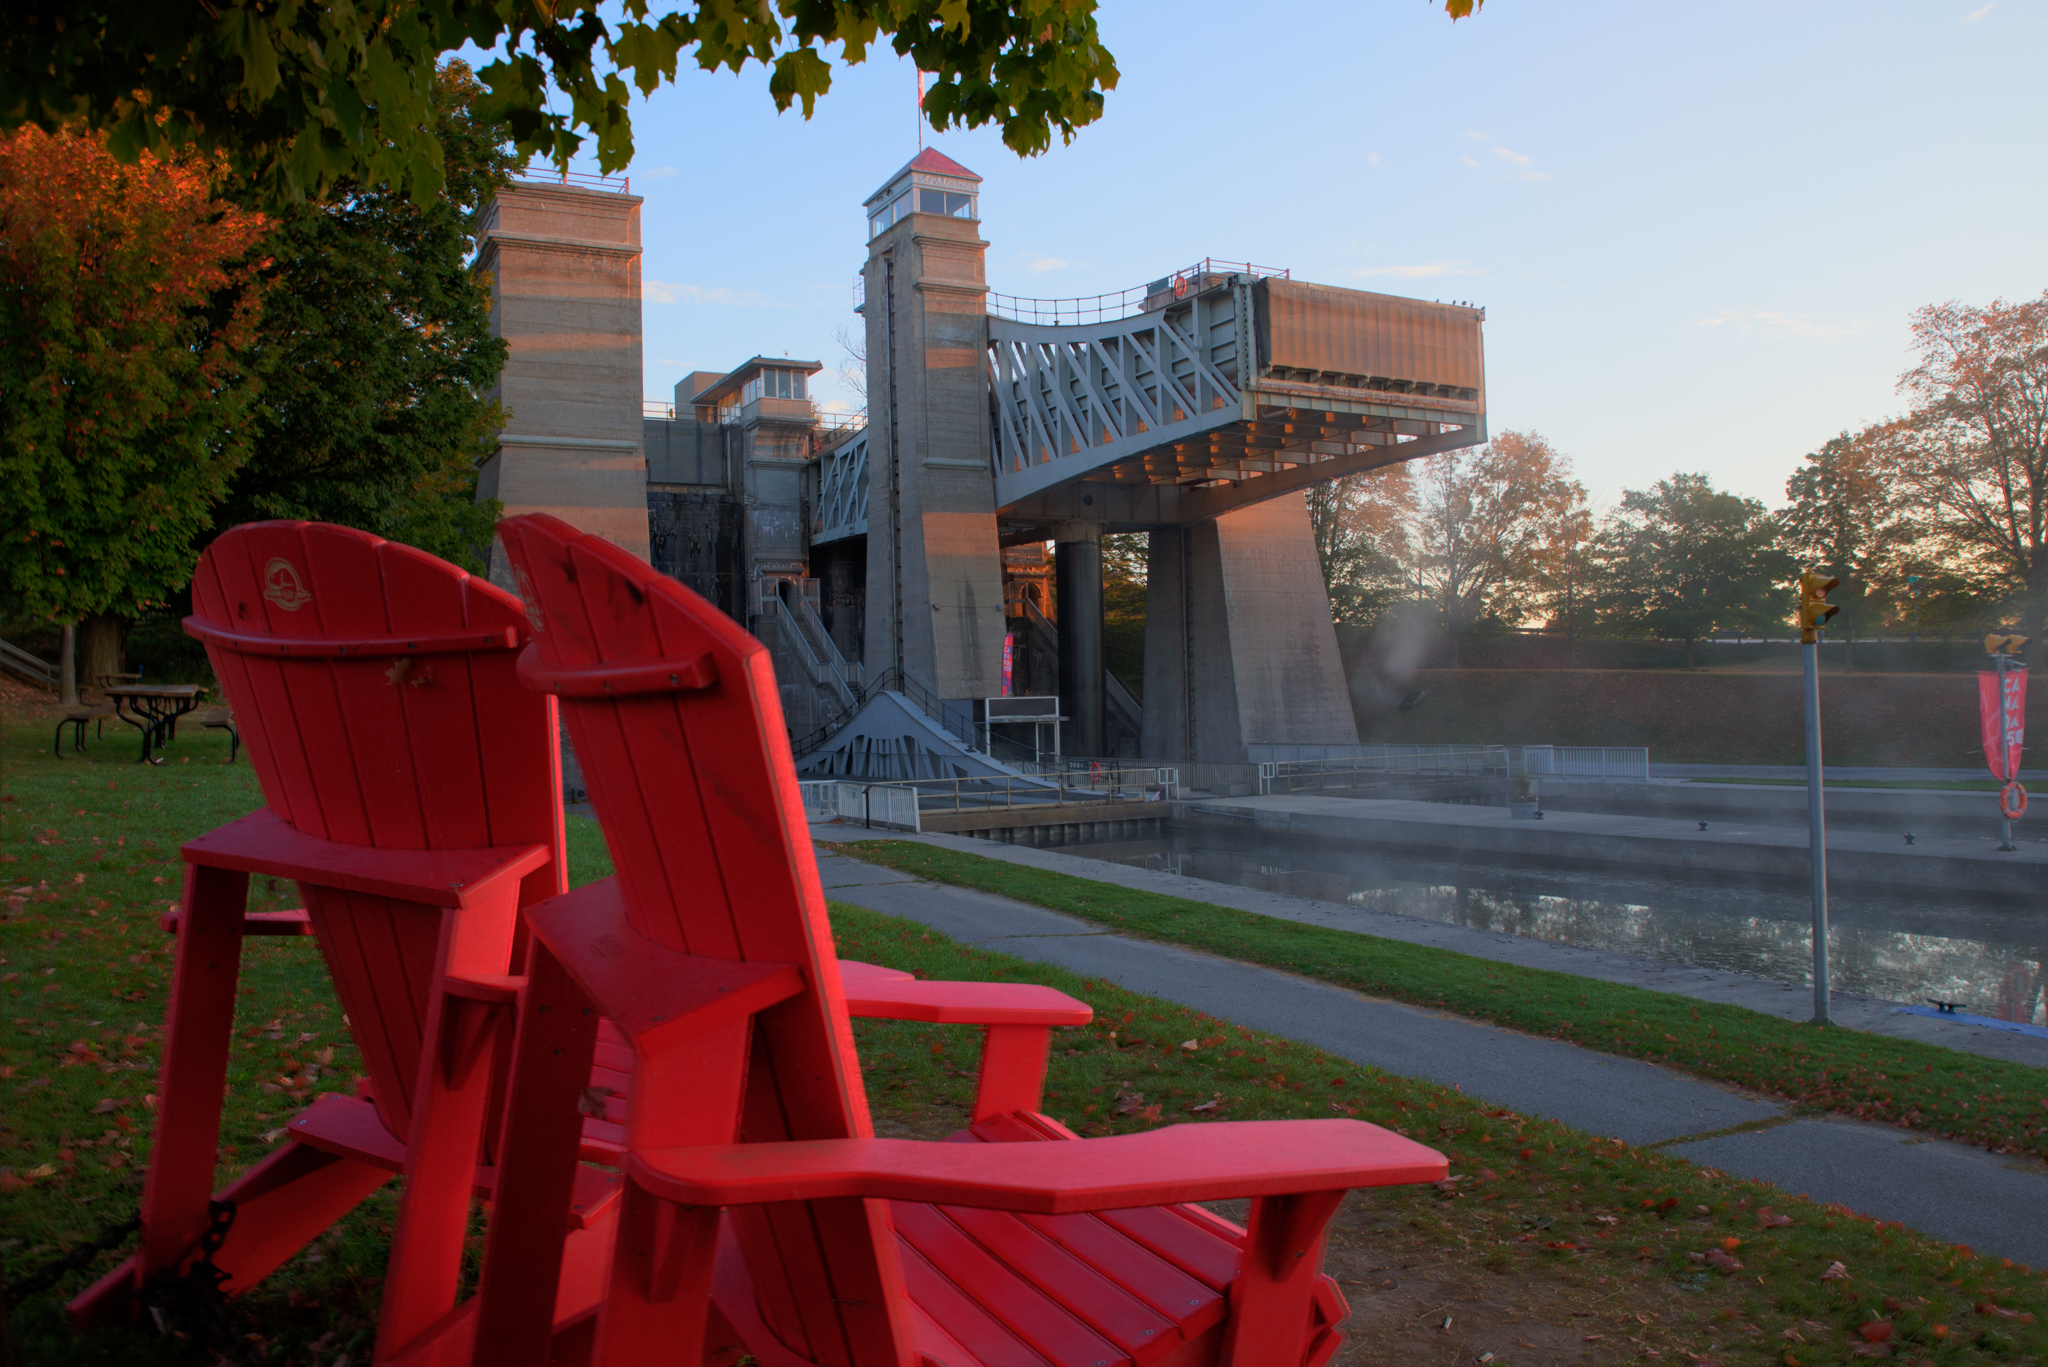 Adirondack chairs by the Lift Locks photo courtesy of Kevin Derrick